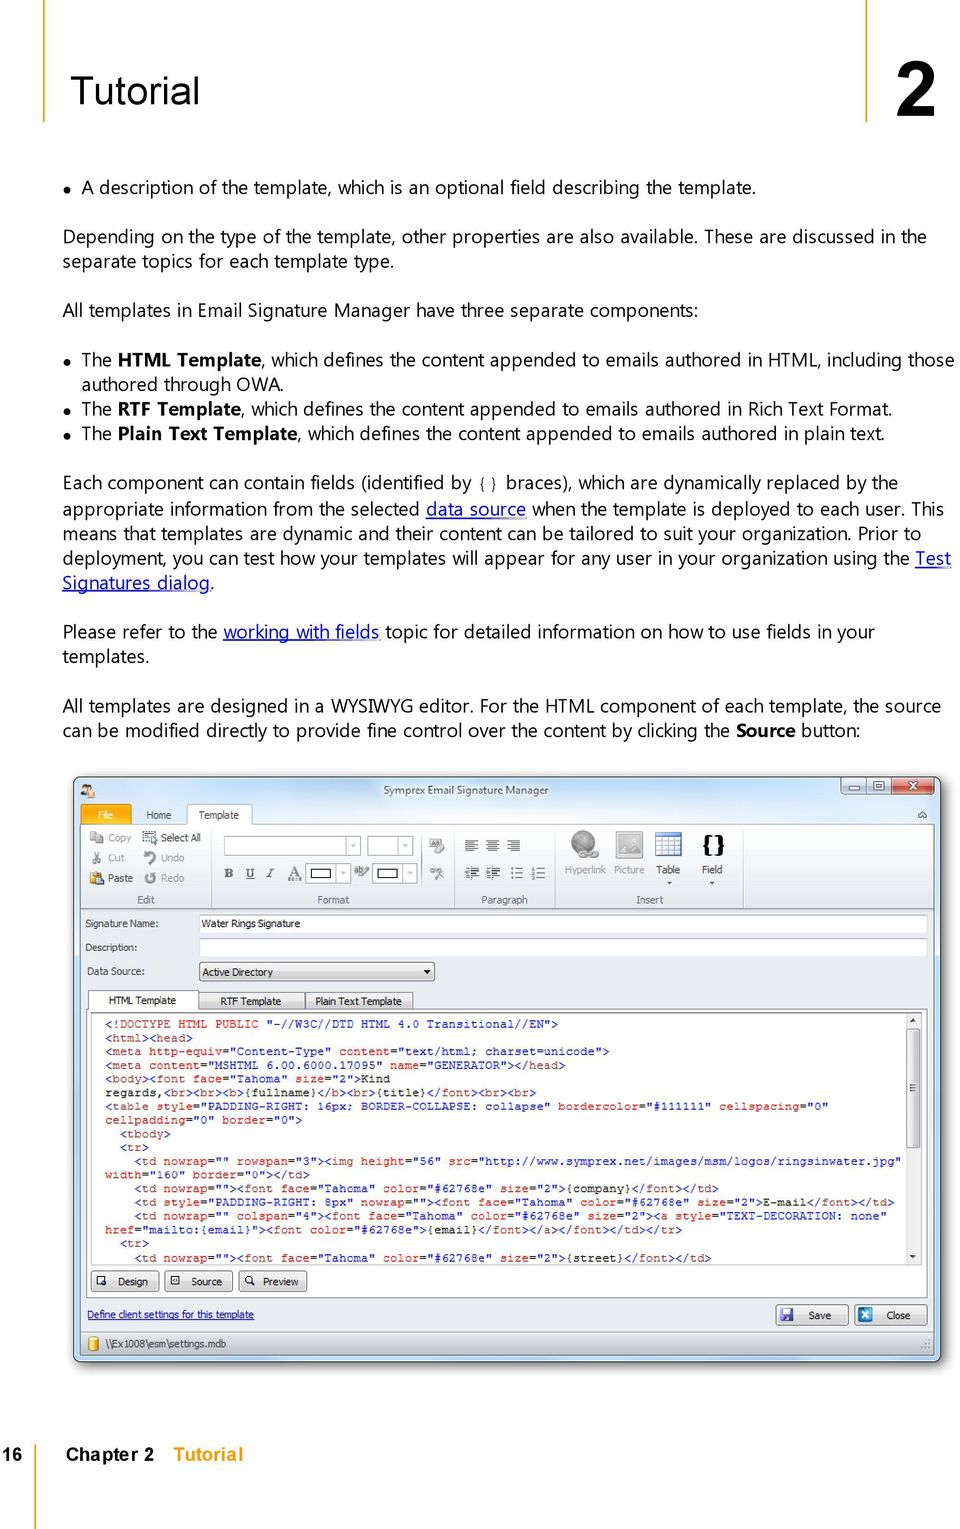 All templates in Email Signature Manager have three separate components: The HTML Template, which defines the content appended to emails authored in HTML, including those authored through OWA.